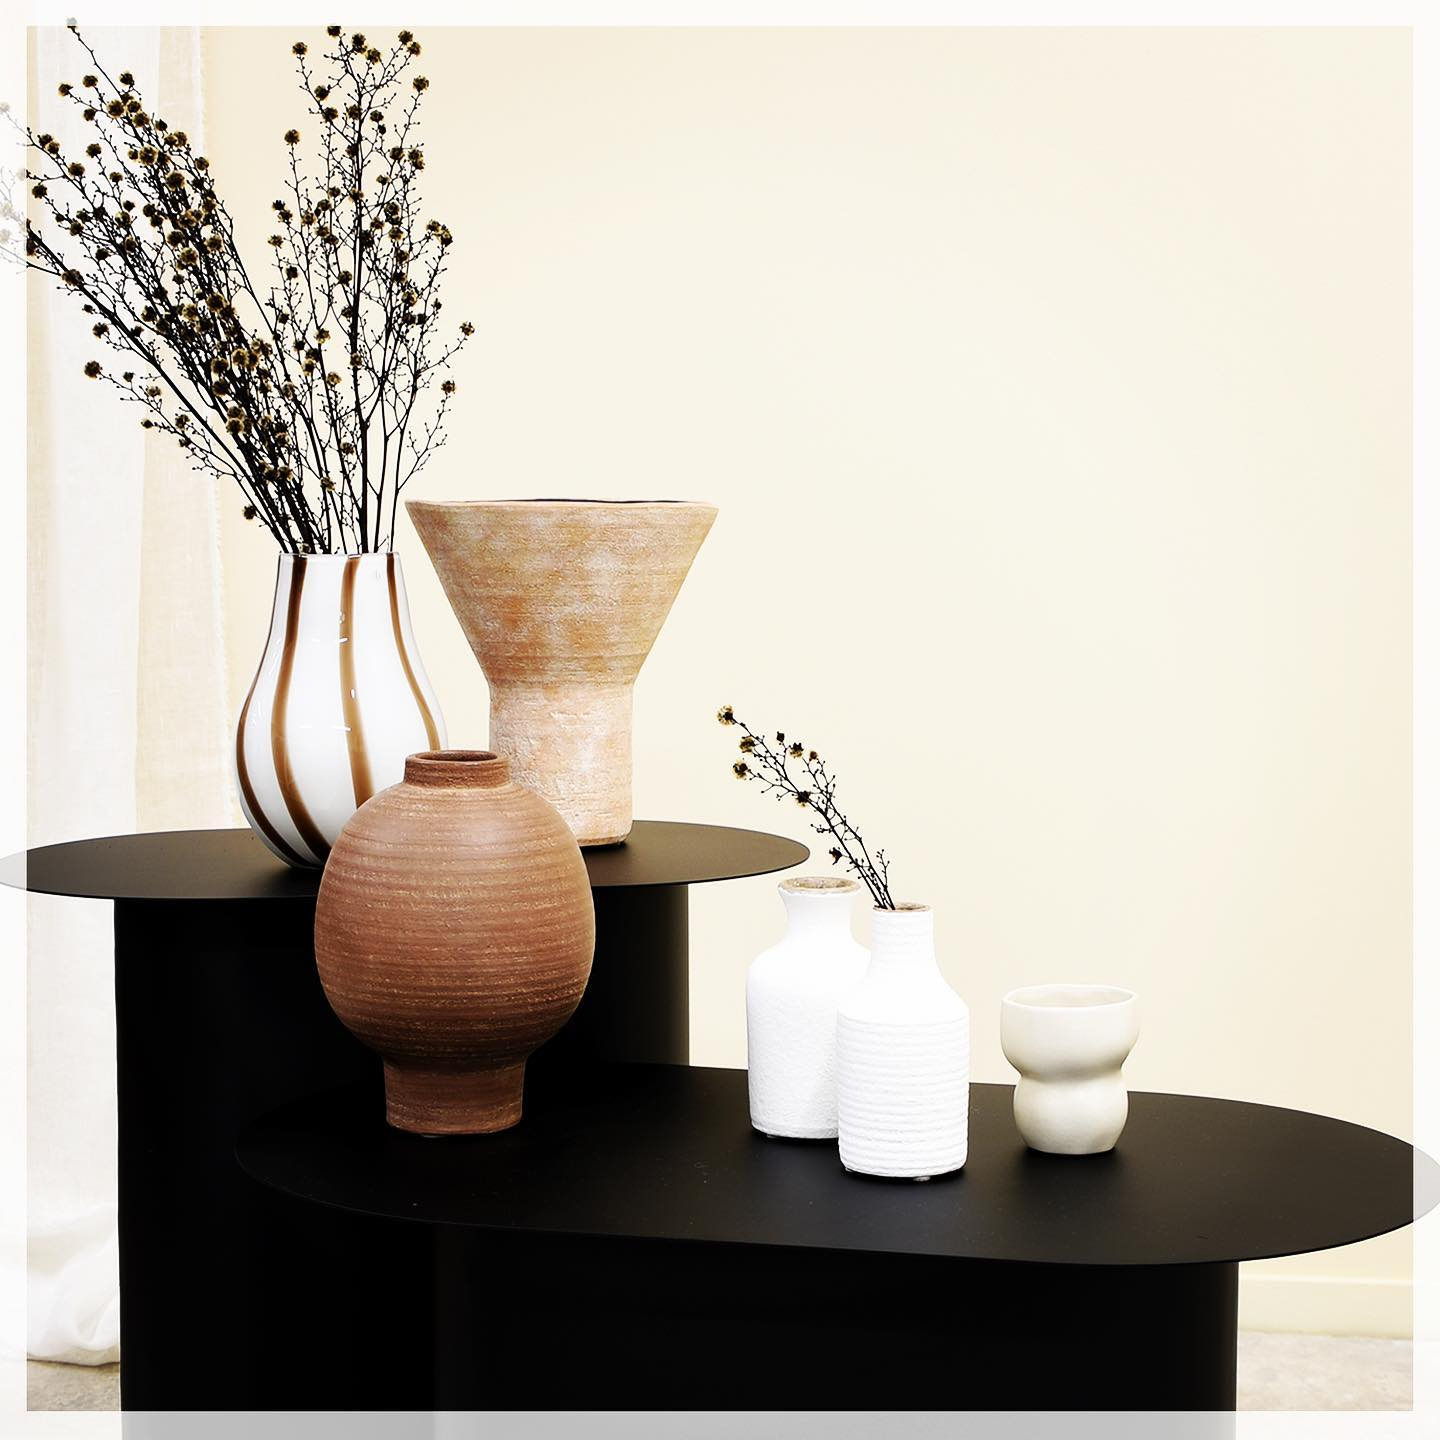 Mixing our very own designs of handmade terracotta pots with Broste's glass vases – a match we thought made for each other. Also our new pair of coffee tables – slim and oval shaped - perfect for those small spaces.  . . #terracottapots #glassvases #coffeetables #sidetables